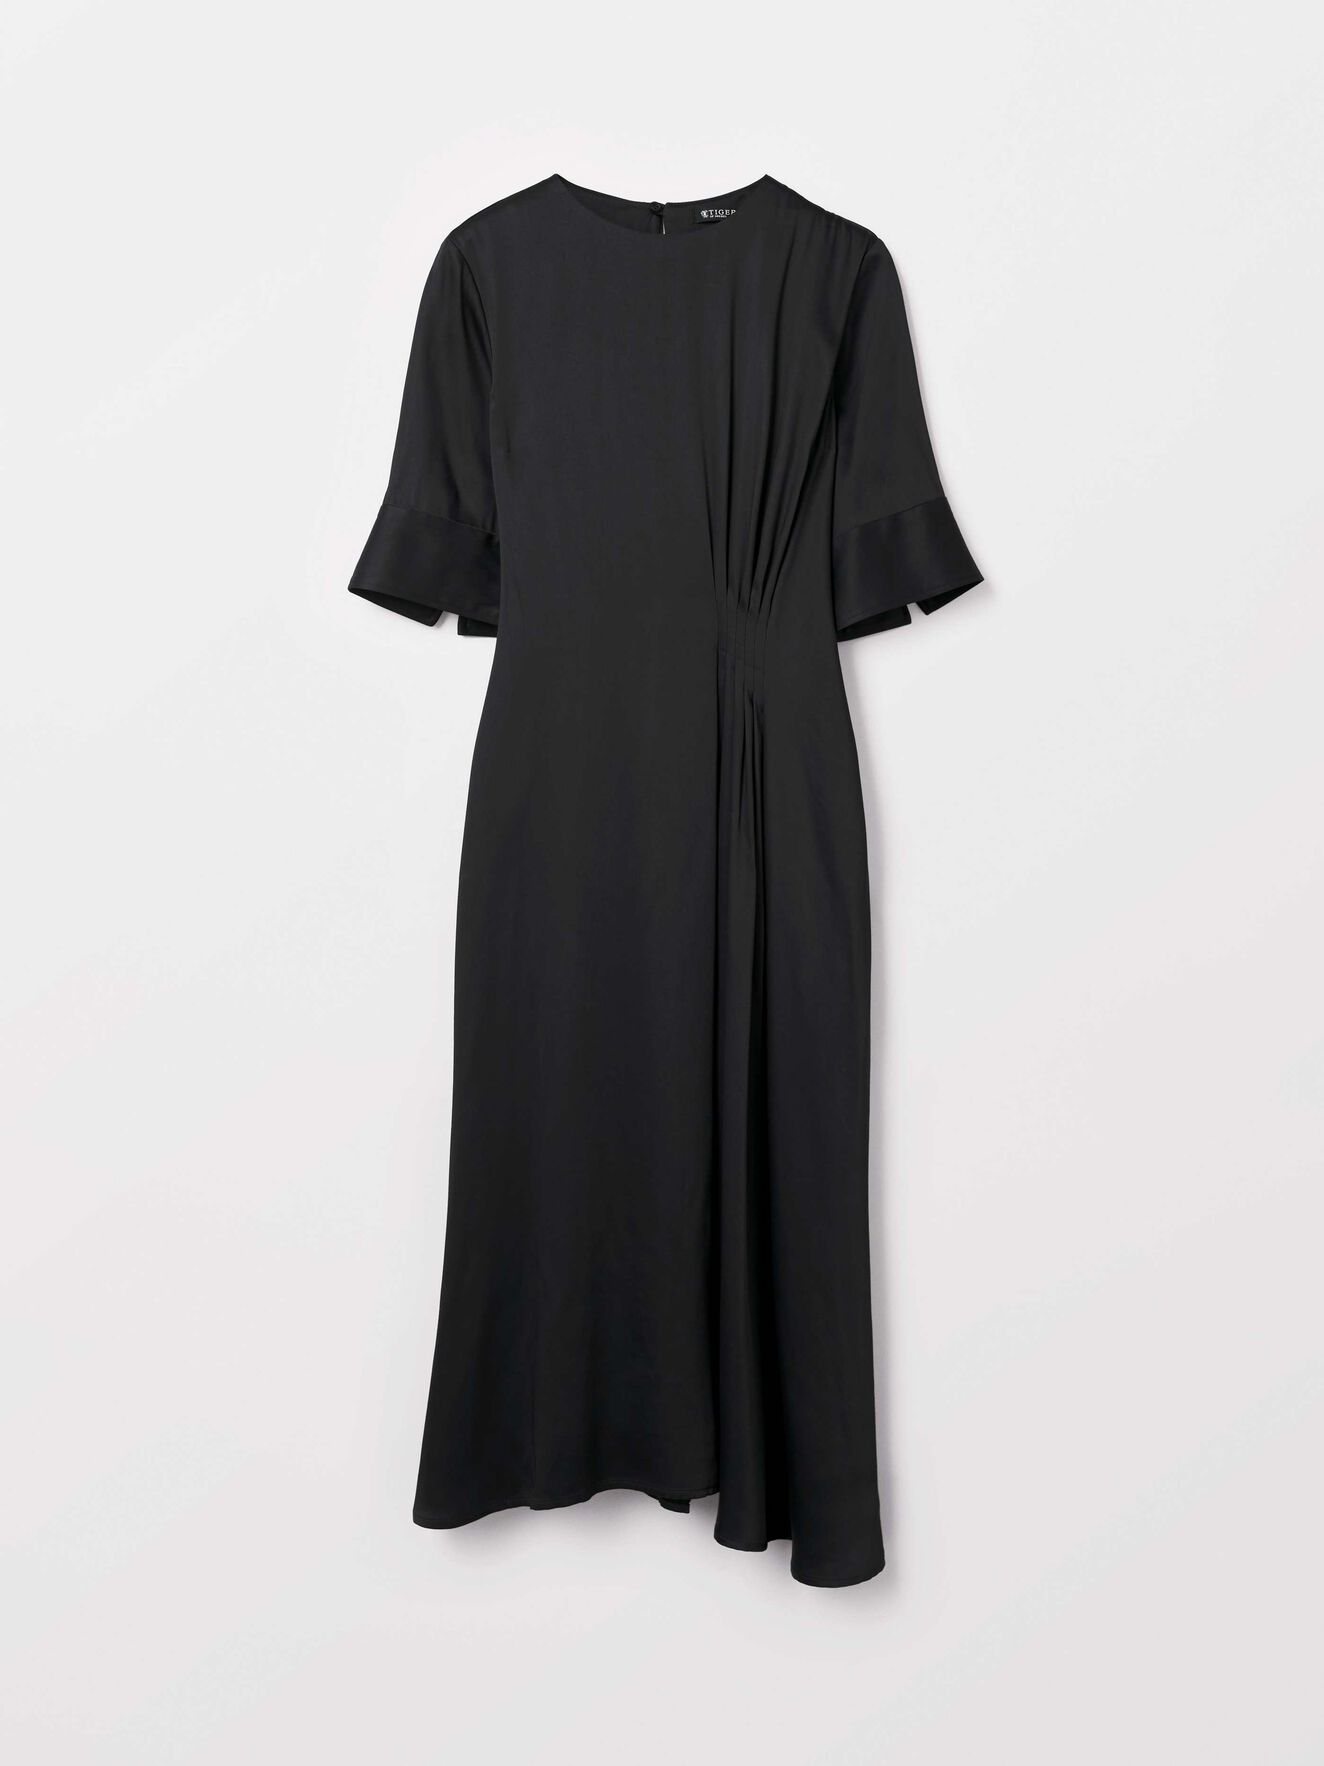 Anella Dress in Midnight Black from Tiger of Sweden